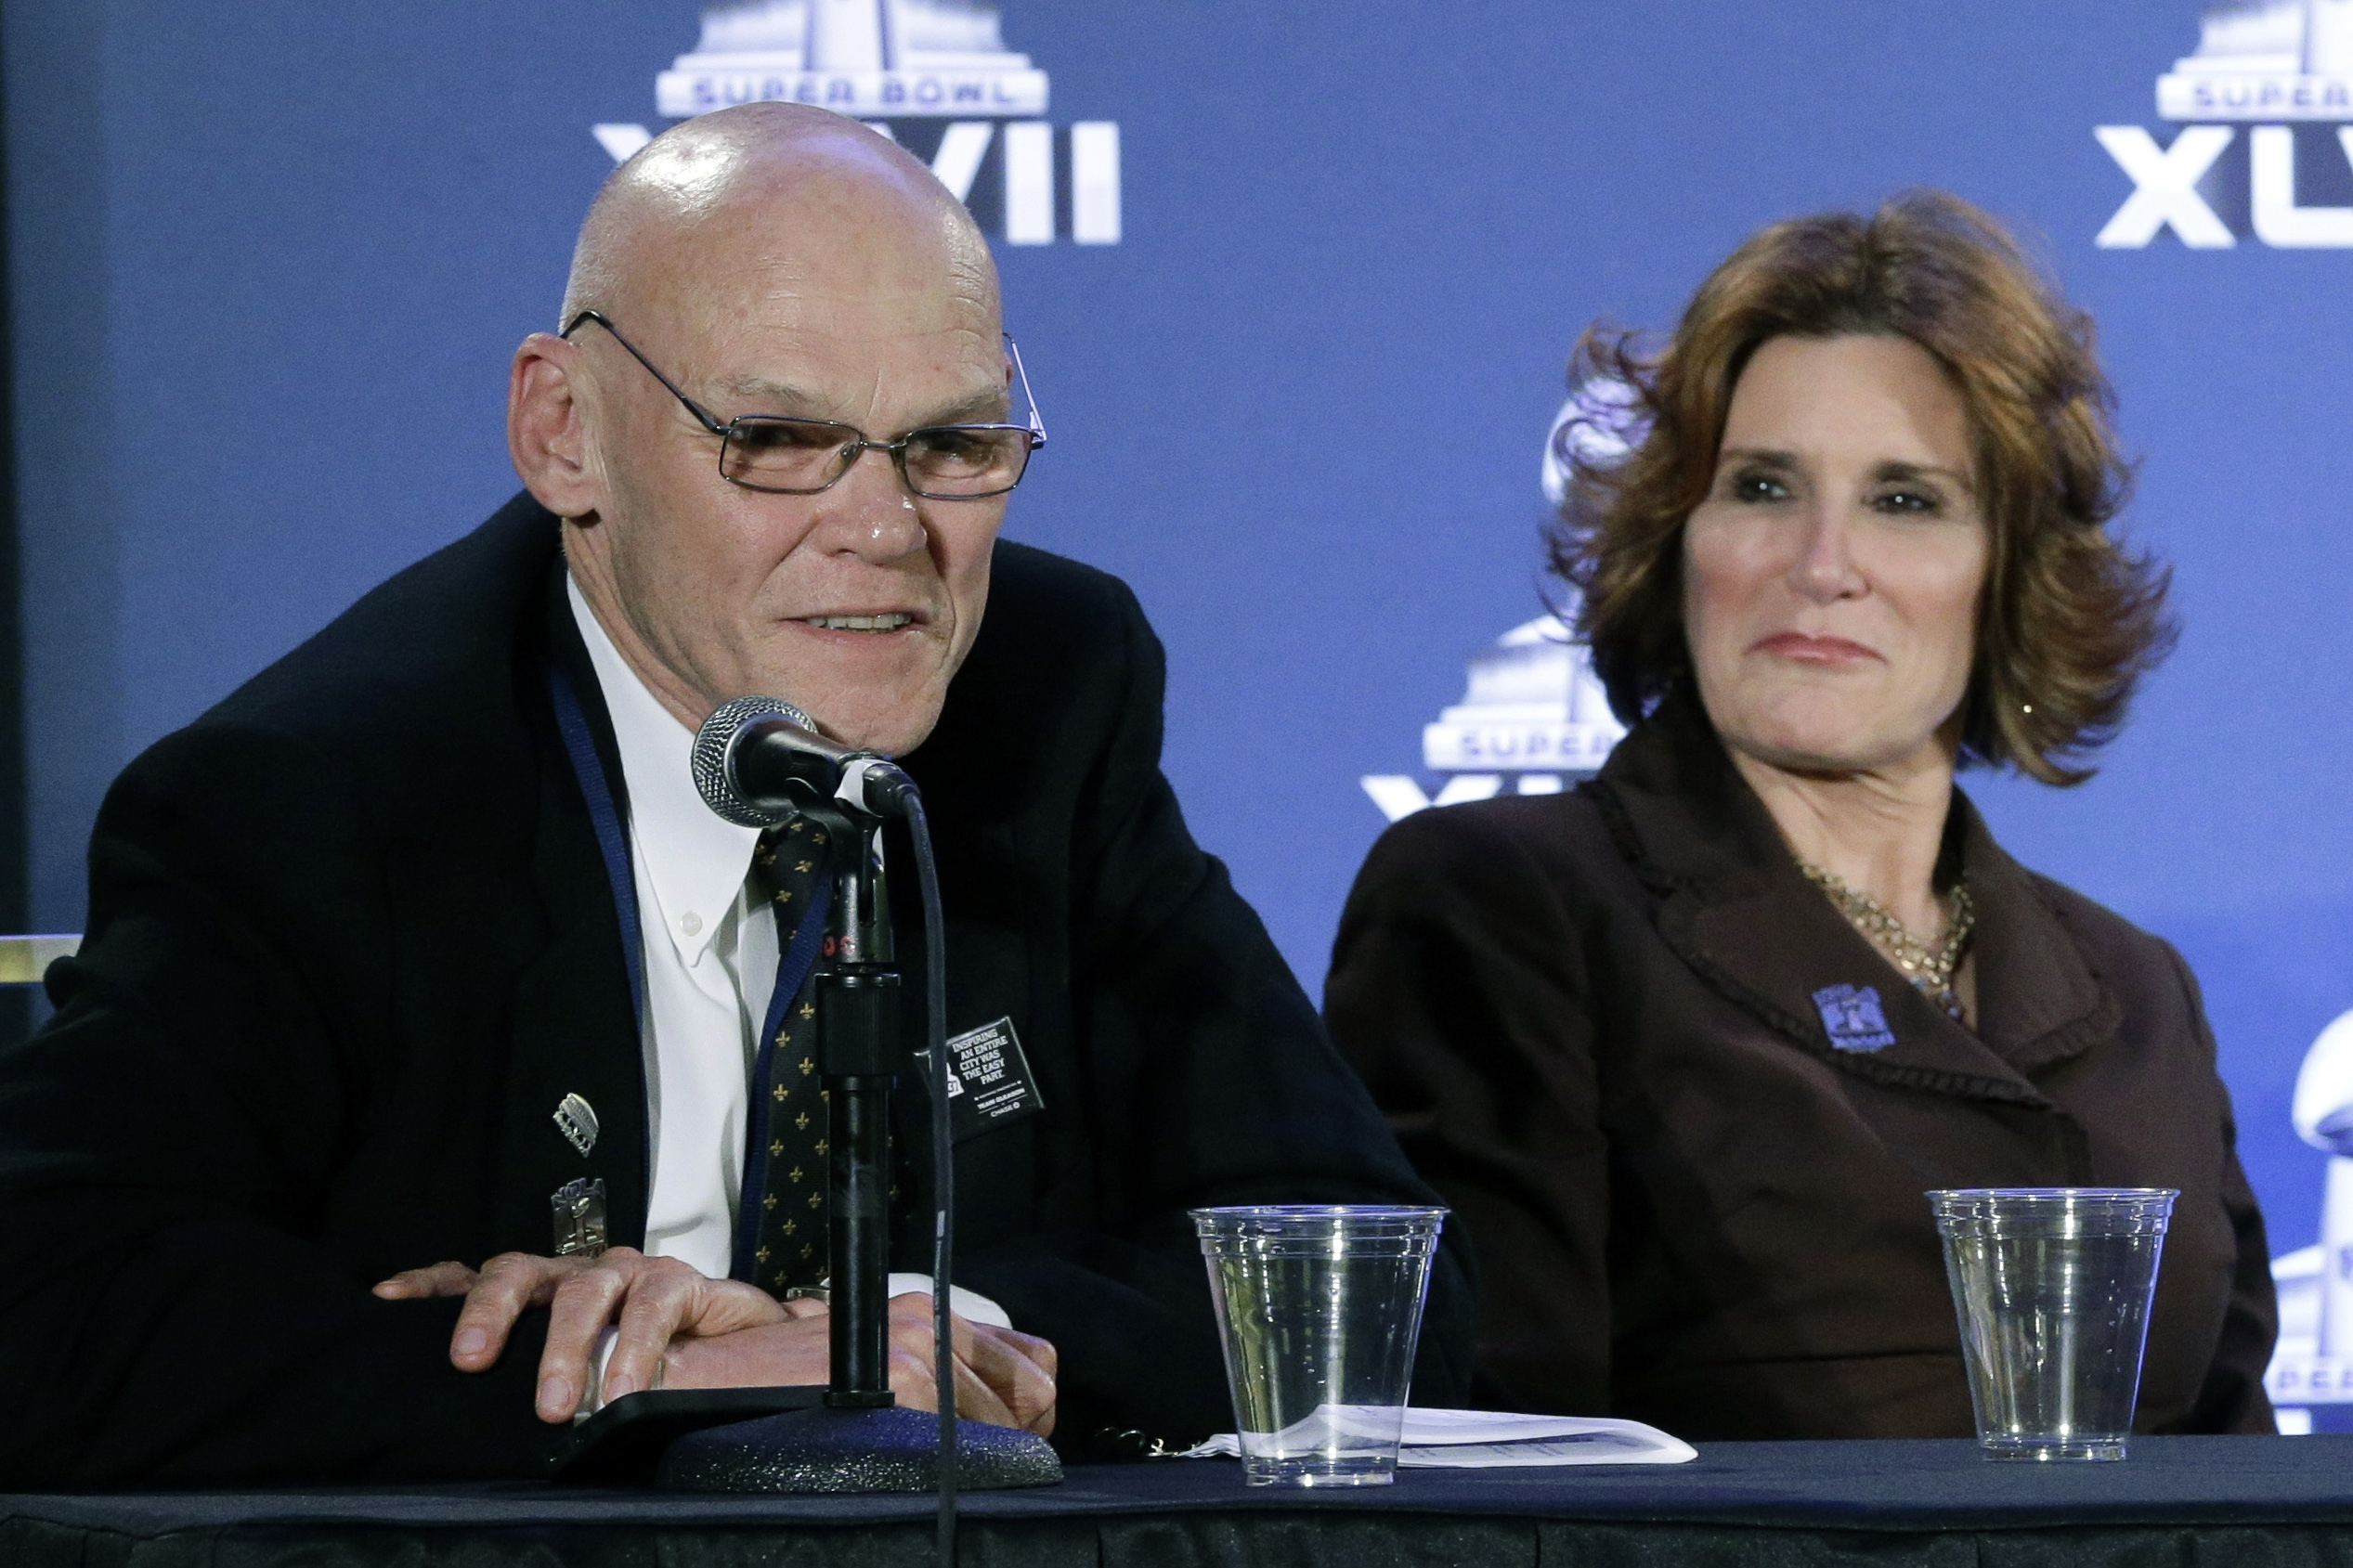 James Carville and Mary Matalin Dish on Politics and ...